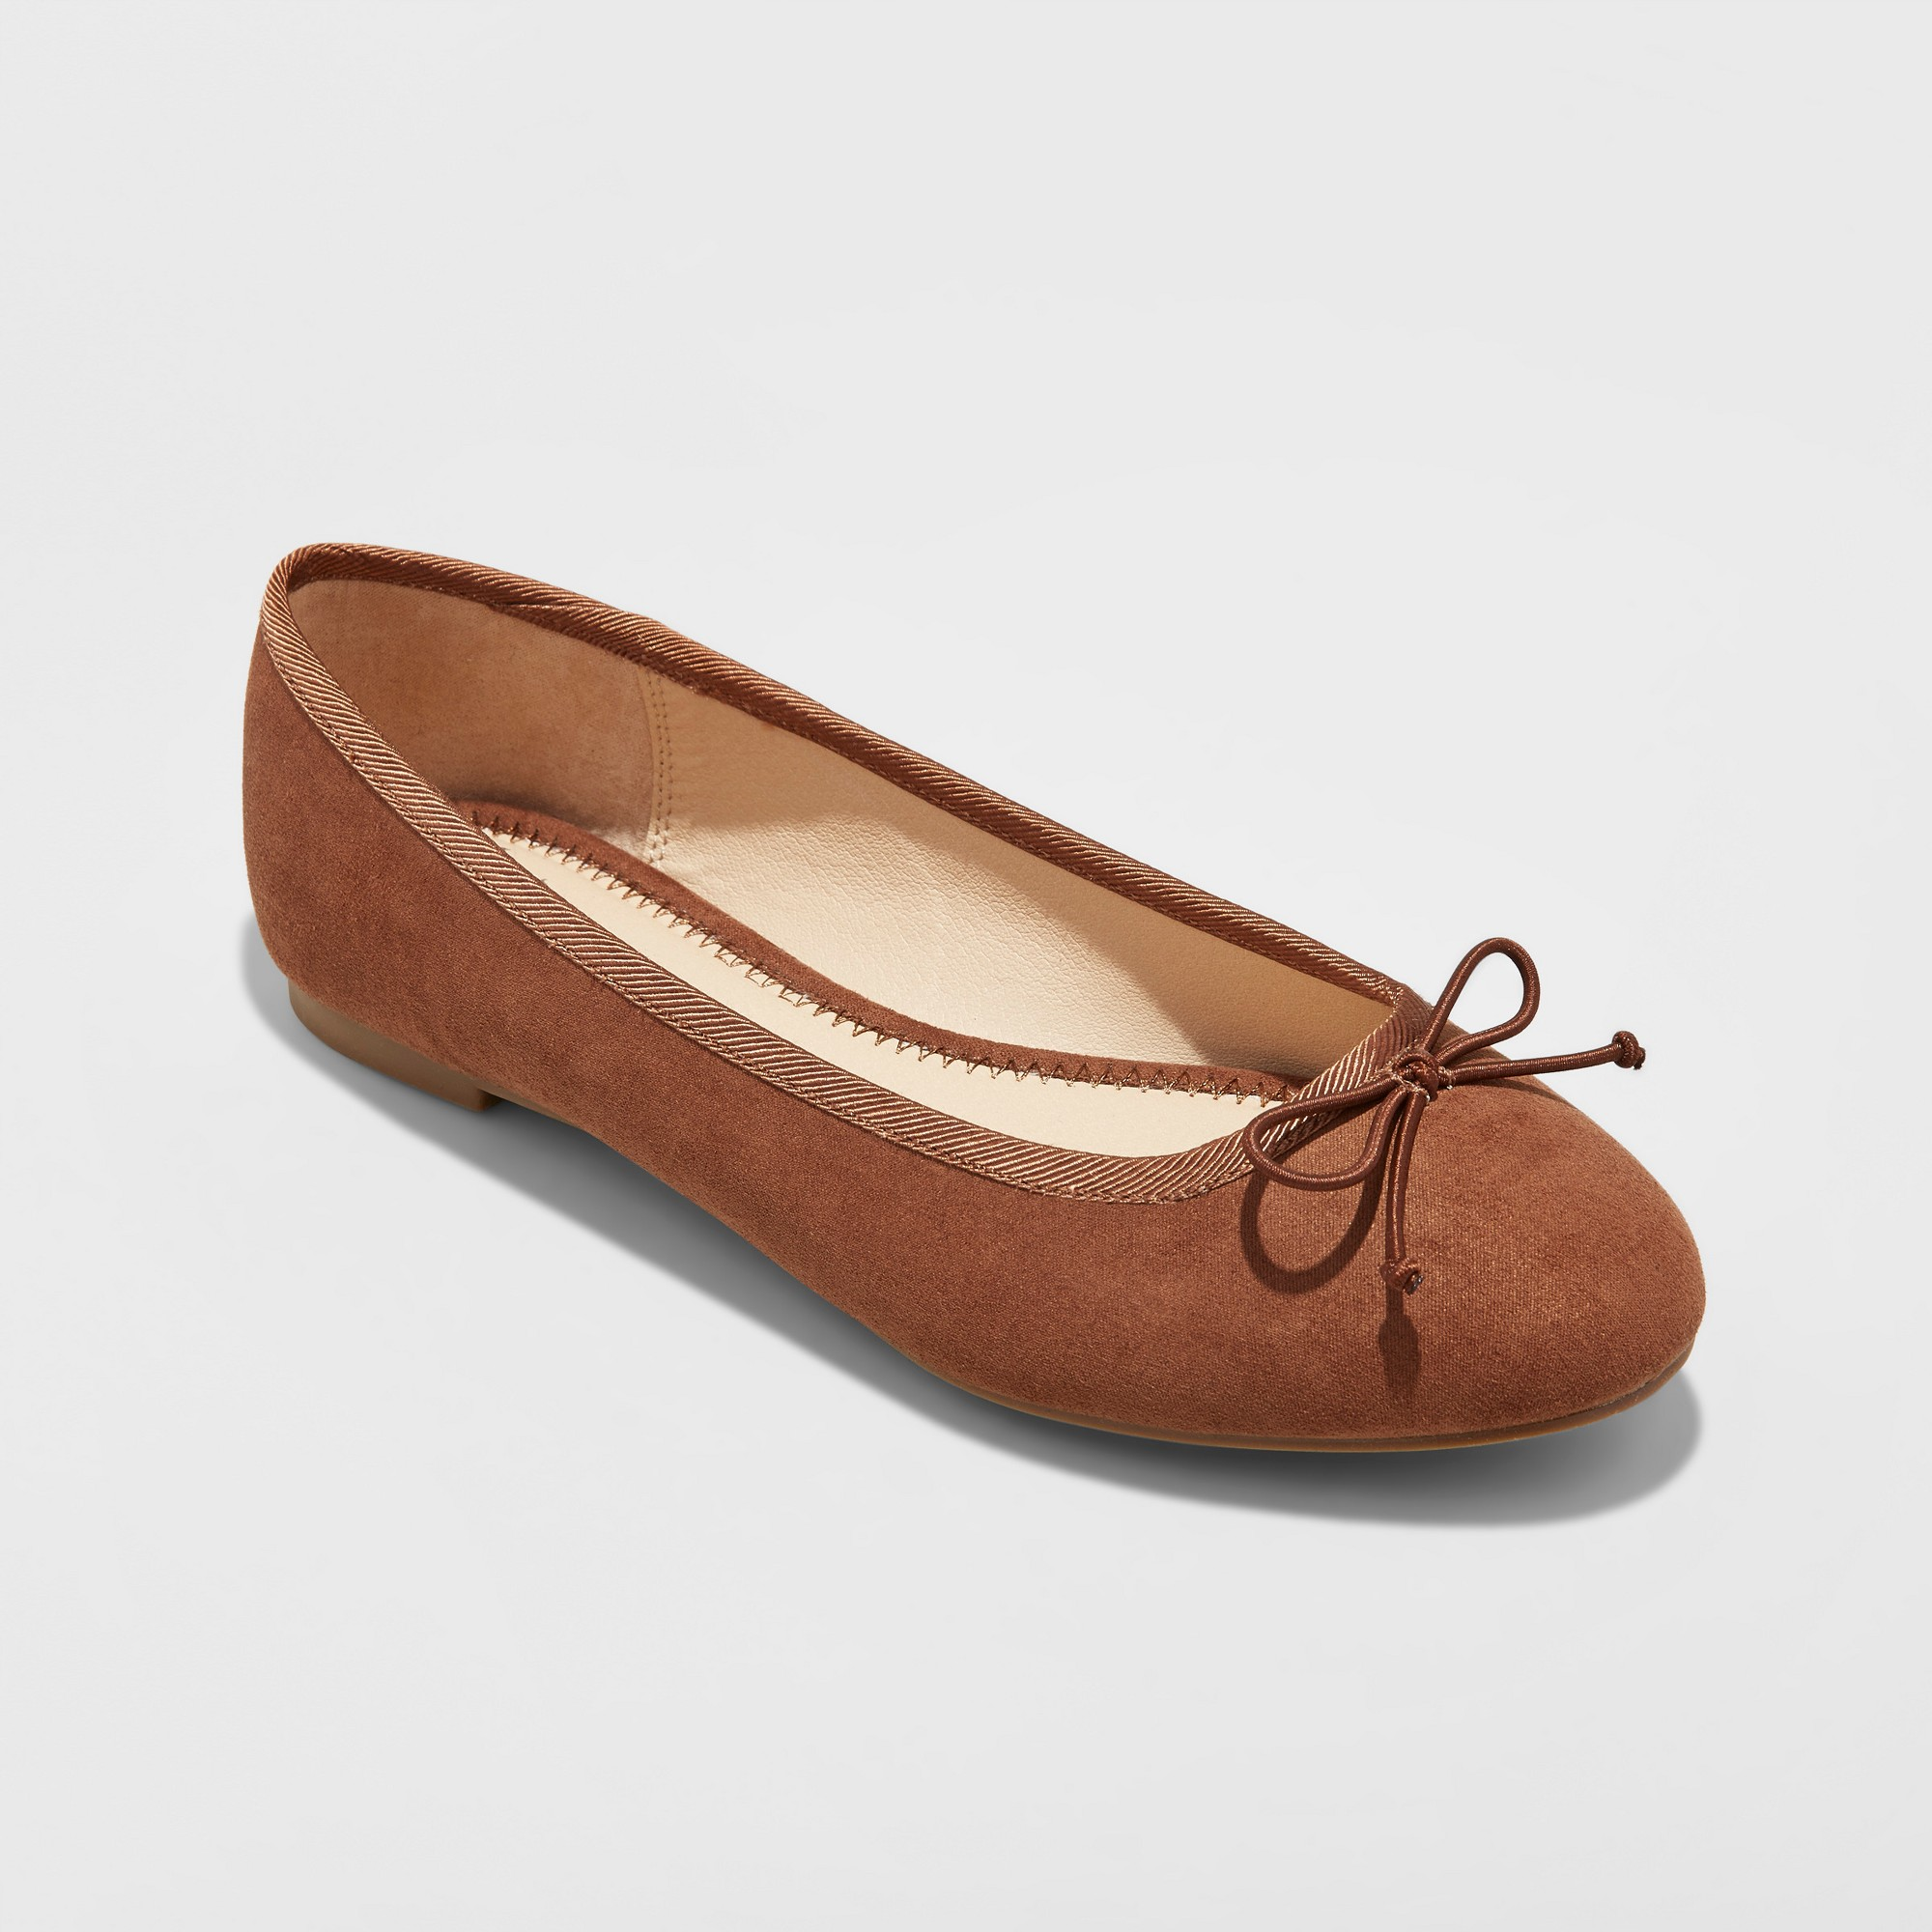 3f5225a0b69c Women s Wide Width Hope Elastic Band Round Toe Mary Jane Ballet Flats - A  New Day Cocoa (Brown) 10W